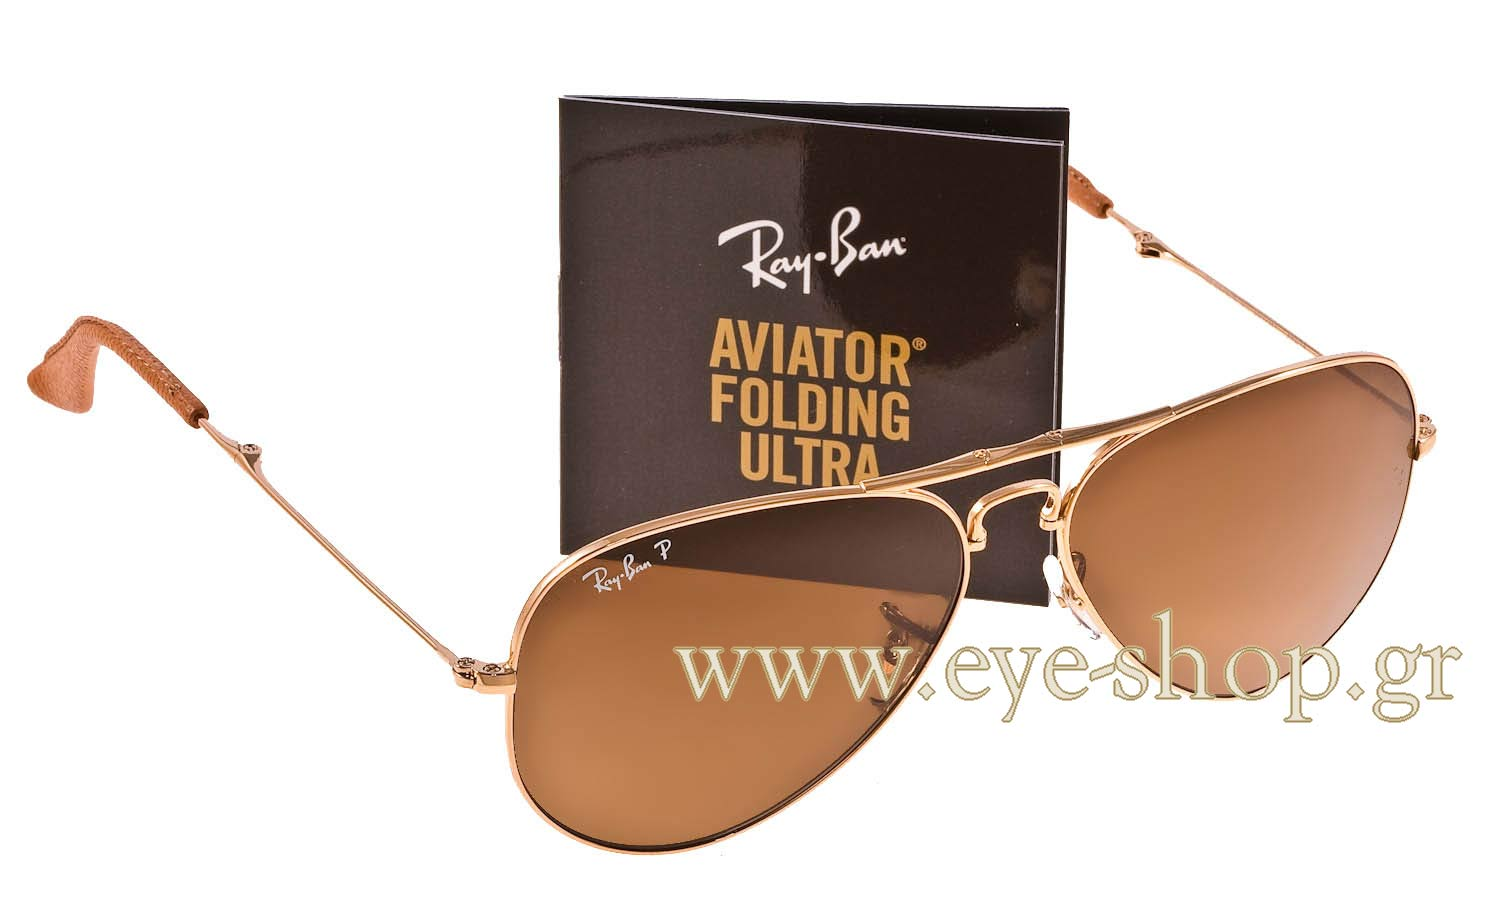 Aviator , color gold brown Metal , lenses brown krystal Polarized glass ,  Polarized. Enlarge Colors Discontinued. Sunglasses Rayban Aviator Folding  ... 5480b5f7ec83